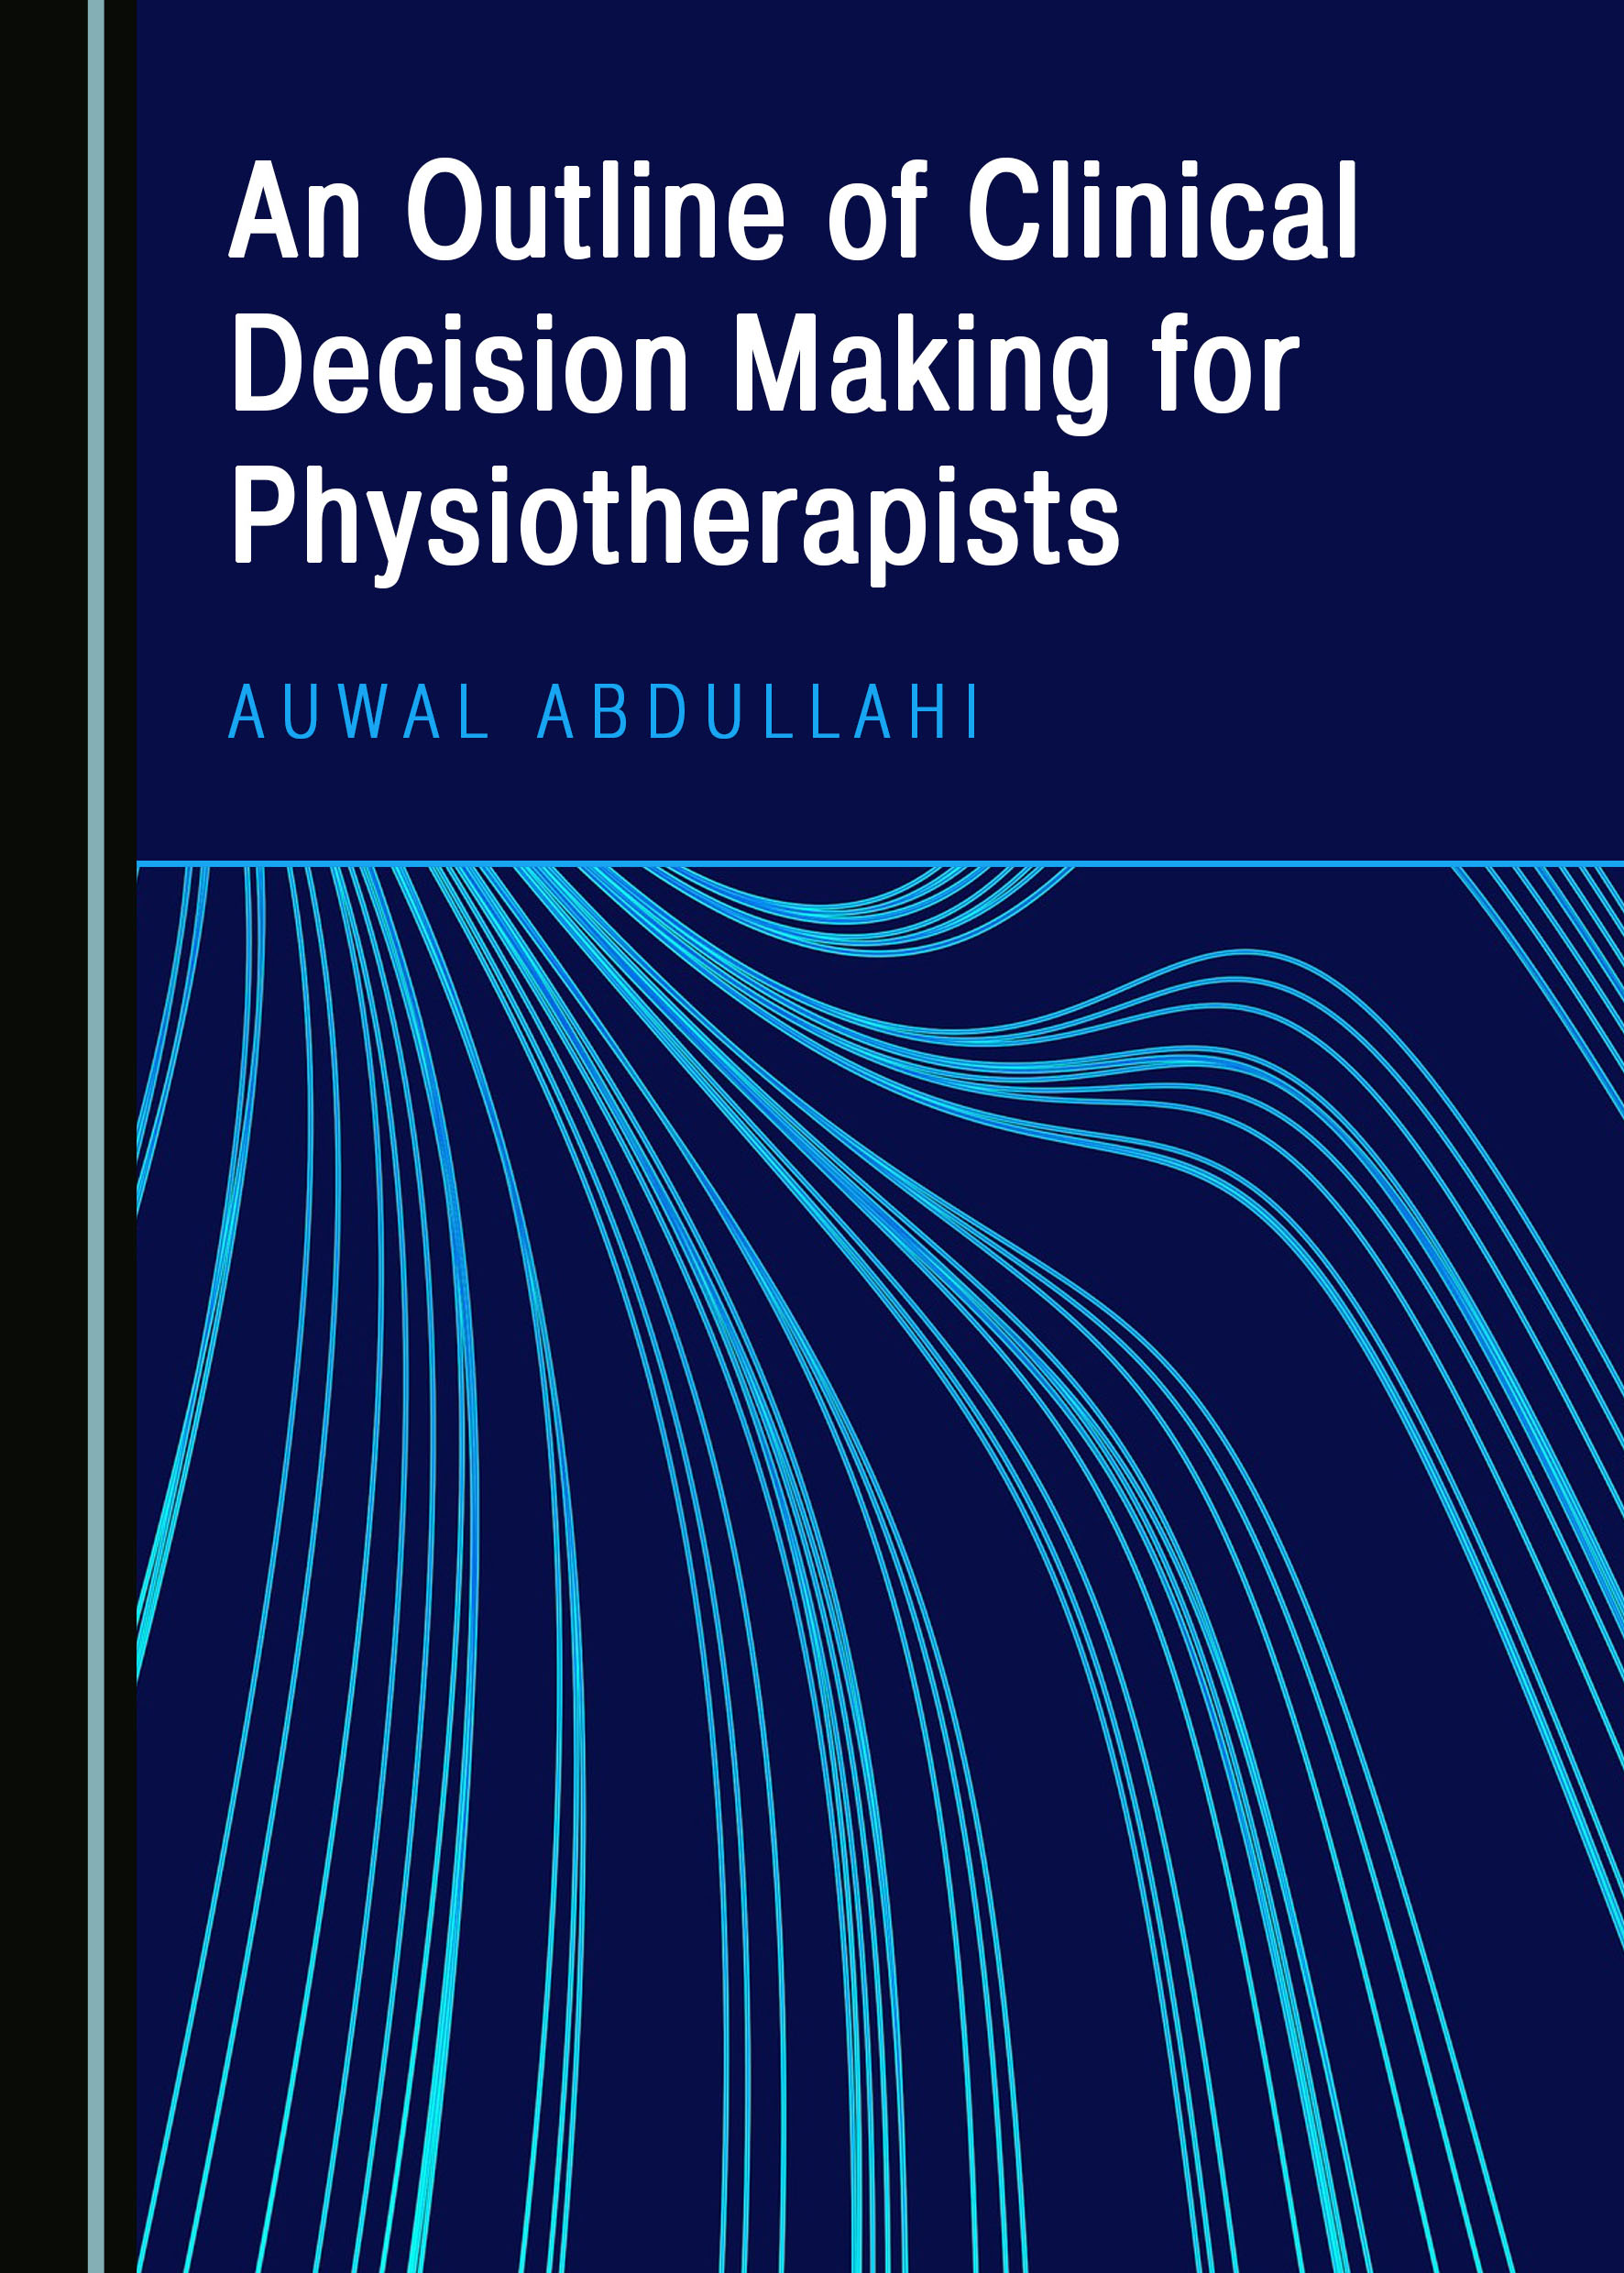 An Outline of Clinical Decision Making for Physiotherapists